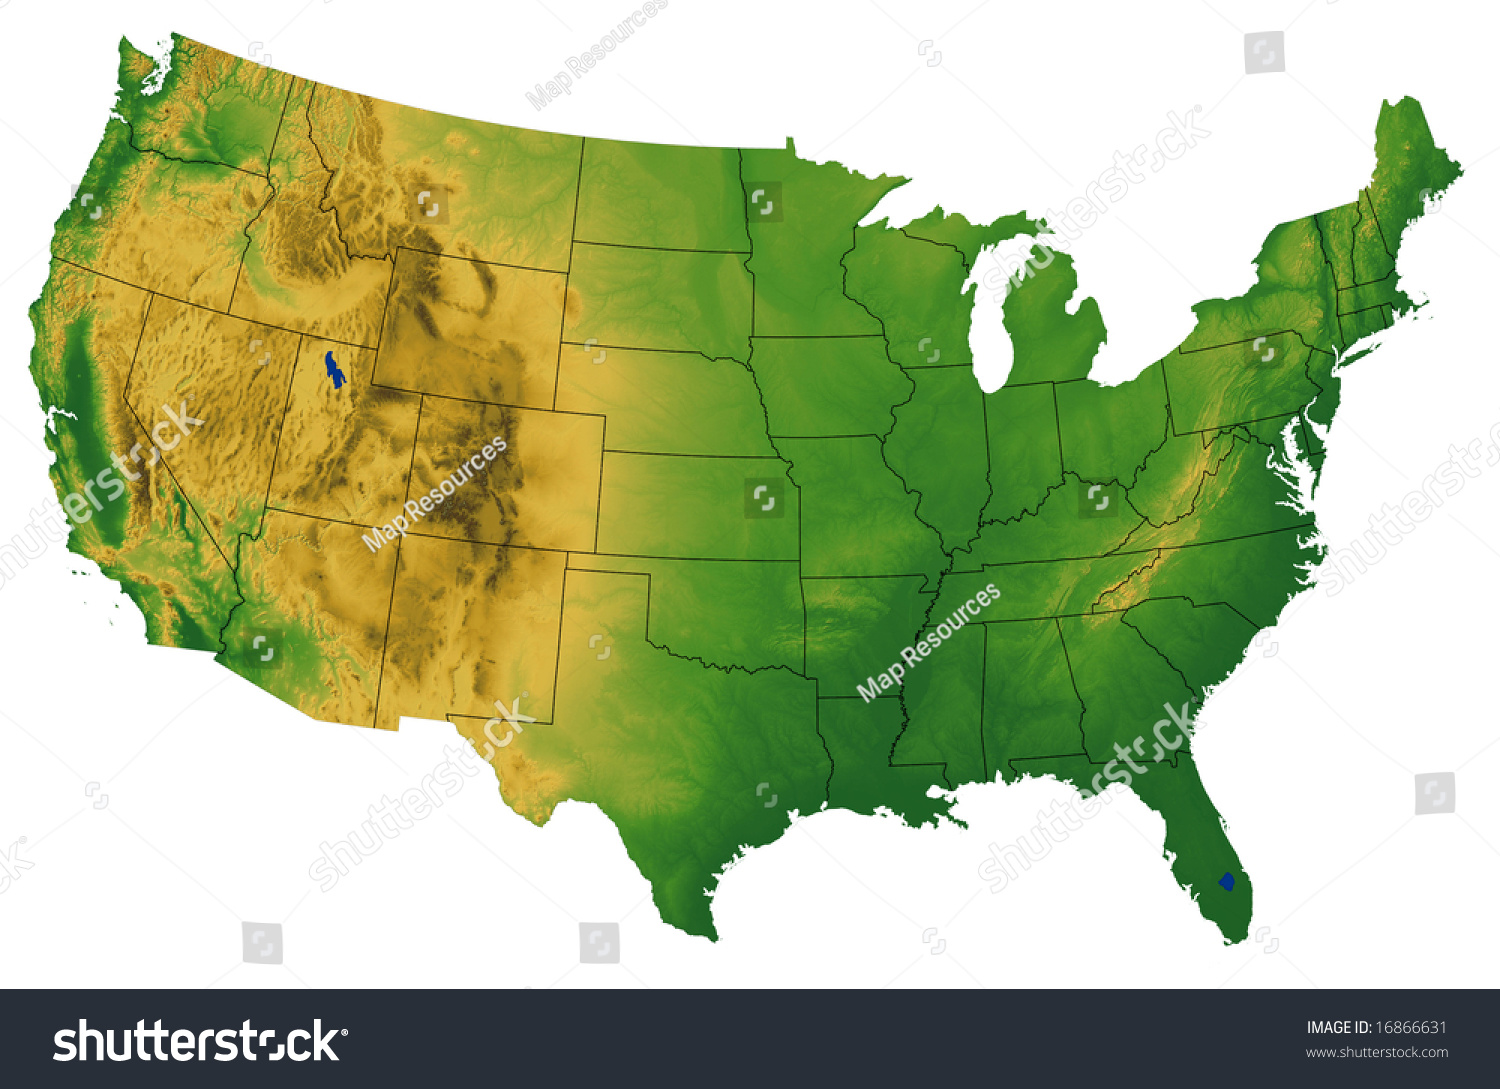 Maps Of The USA The United States Of America Map Library Where - Contiguous us hillshade map